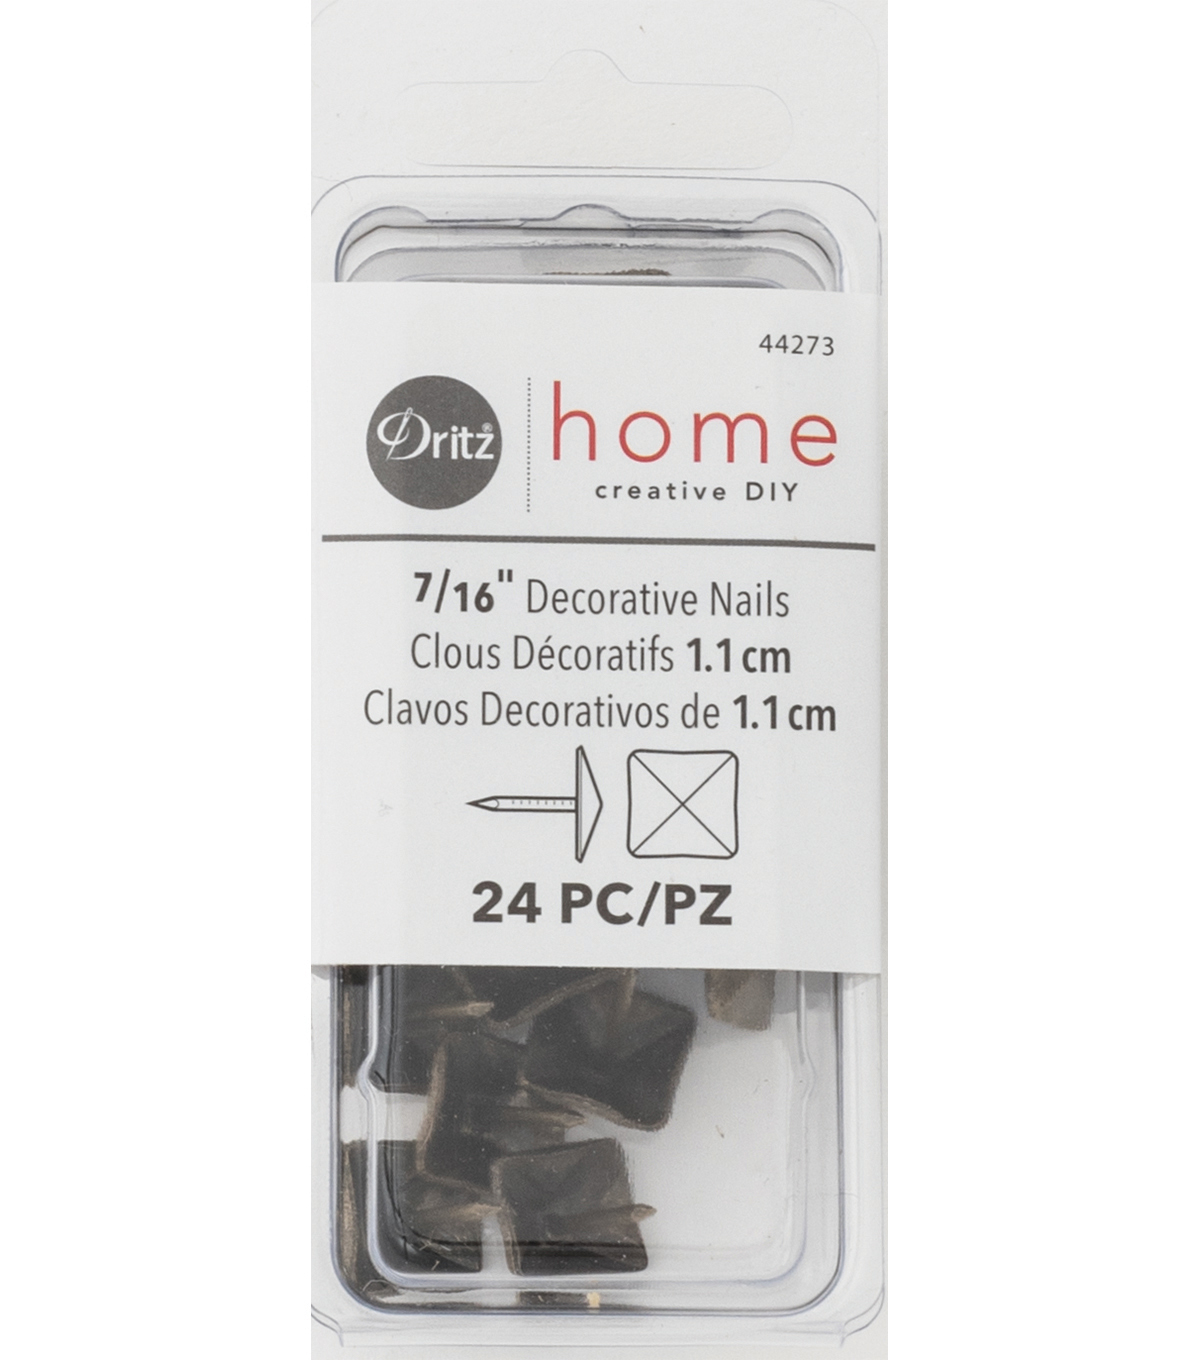 Dritz Home 0.47\u0022 Decorative Nails Square 24pcs Gold